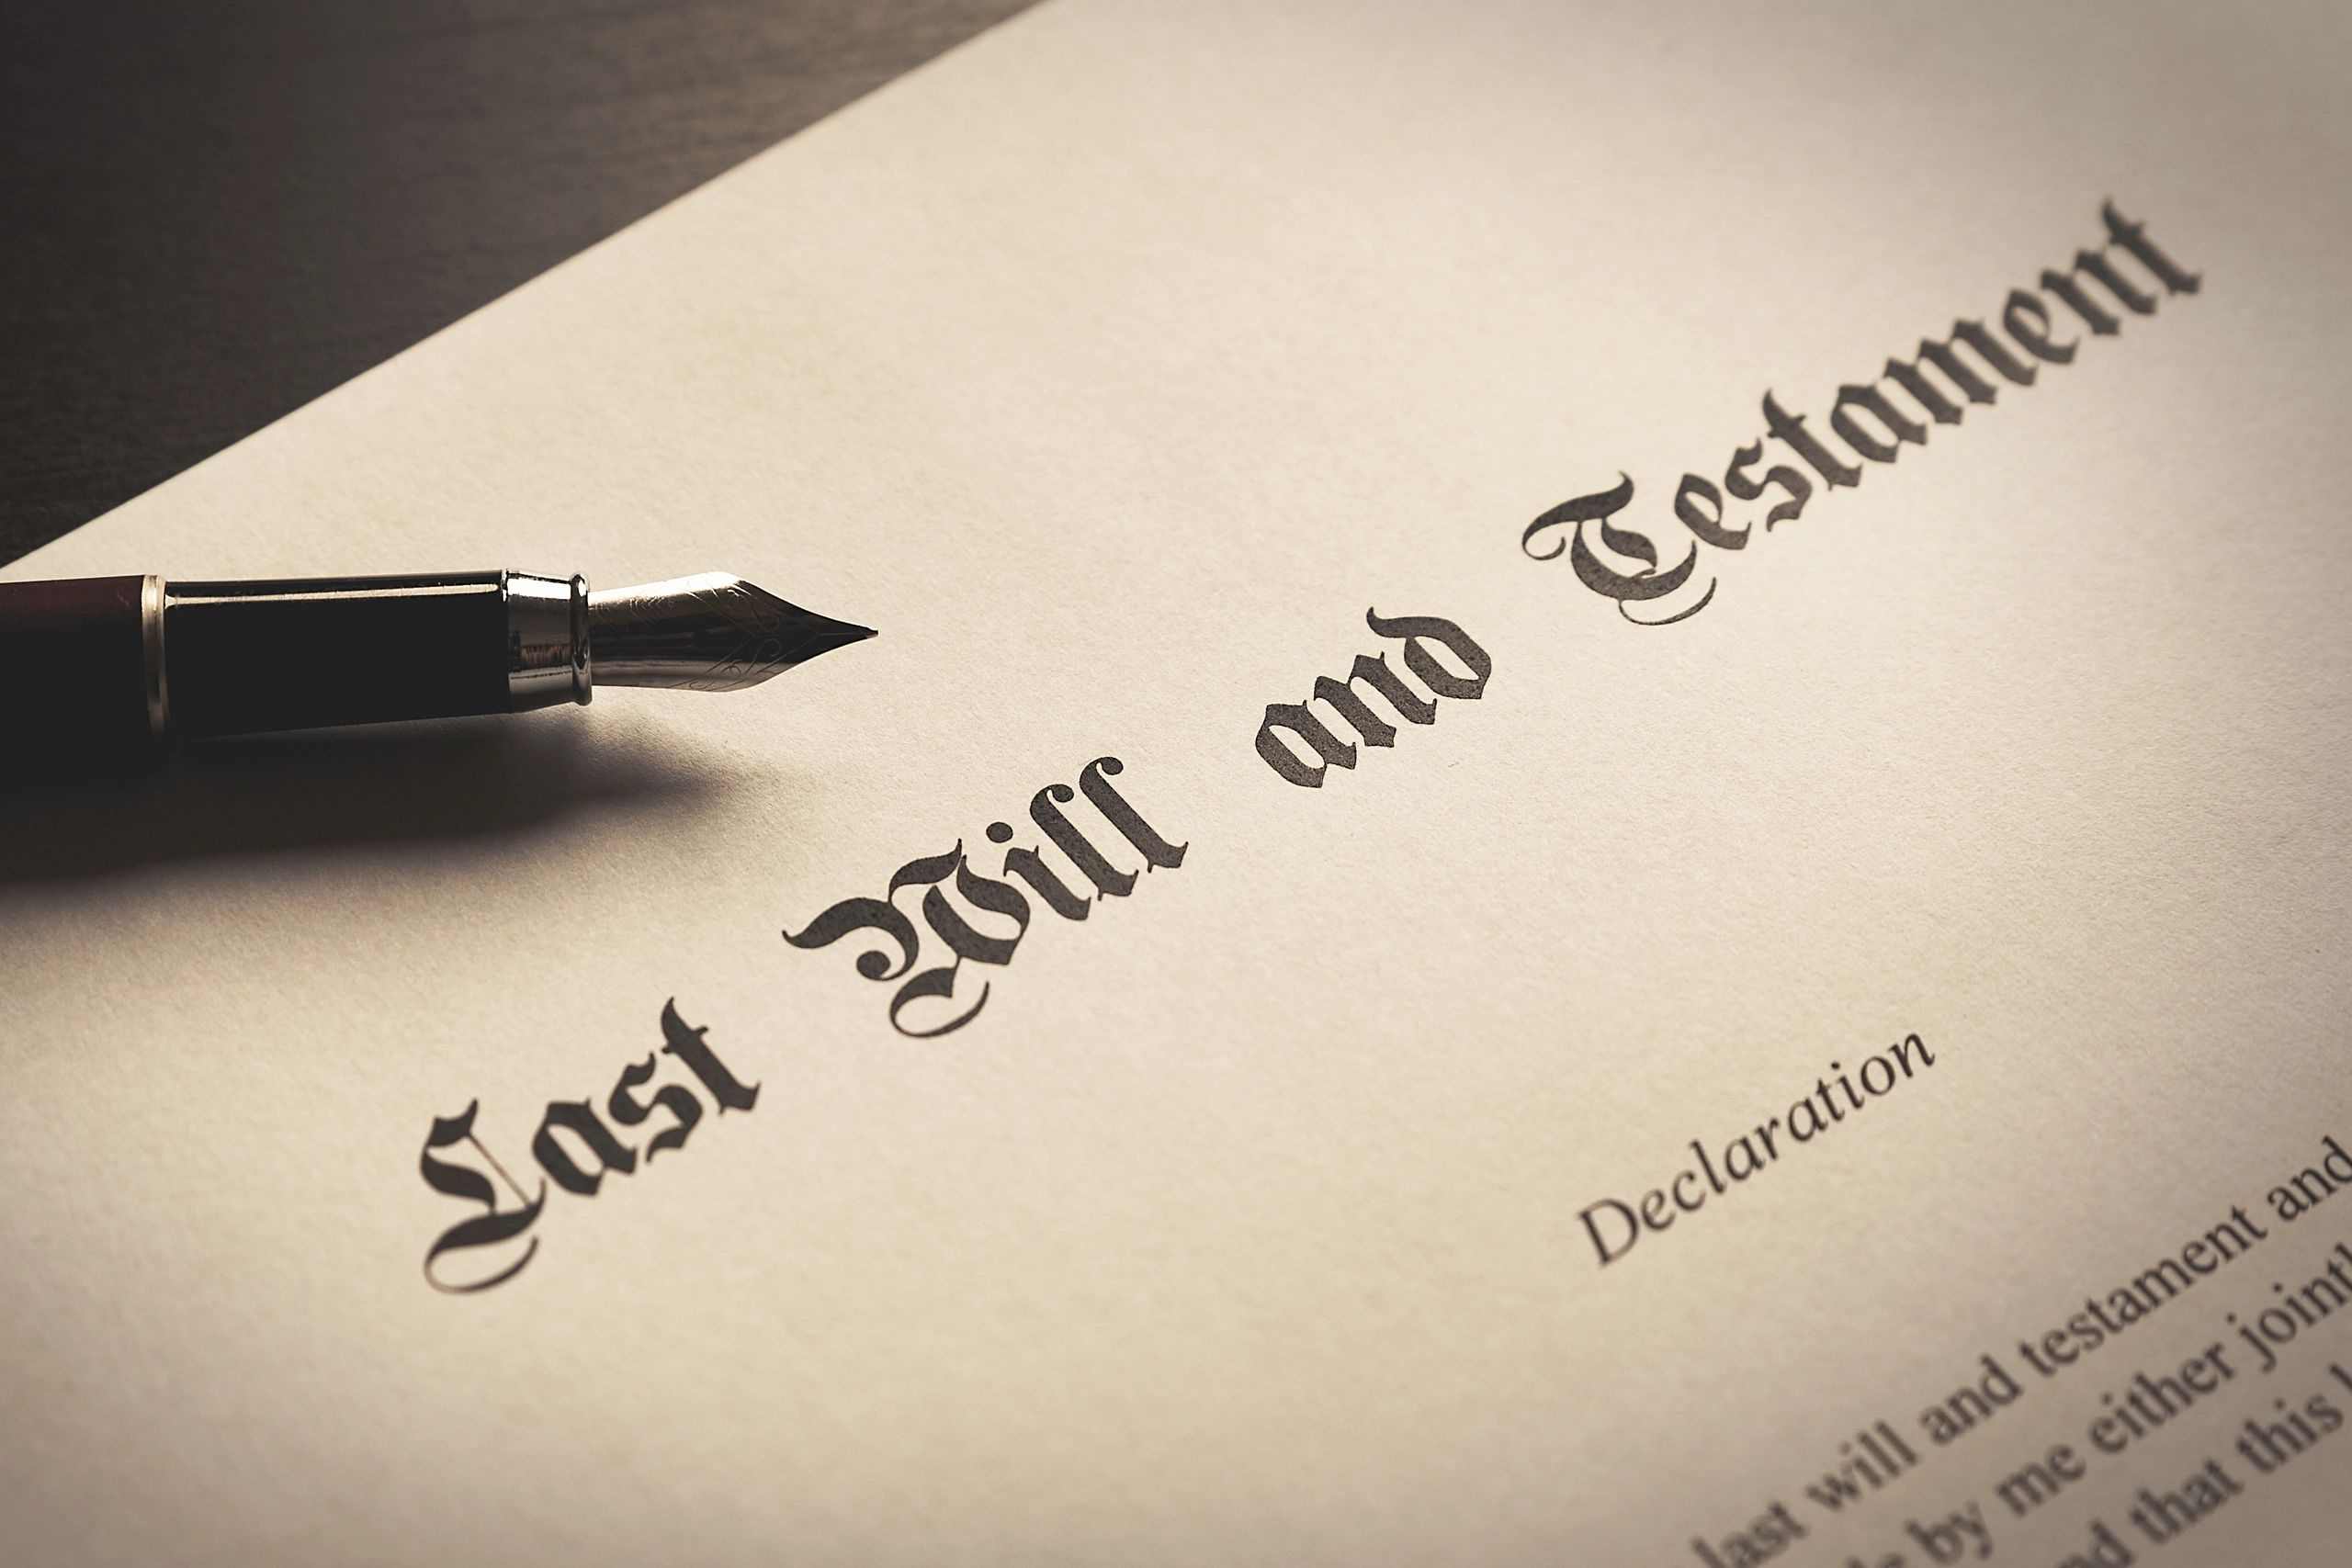 Will, Estate, Probate, Letters of Adminstration